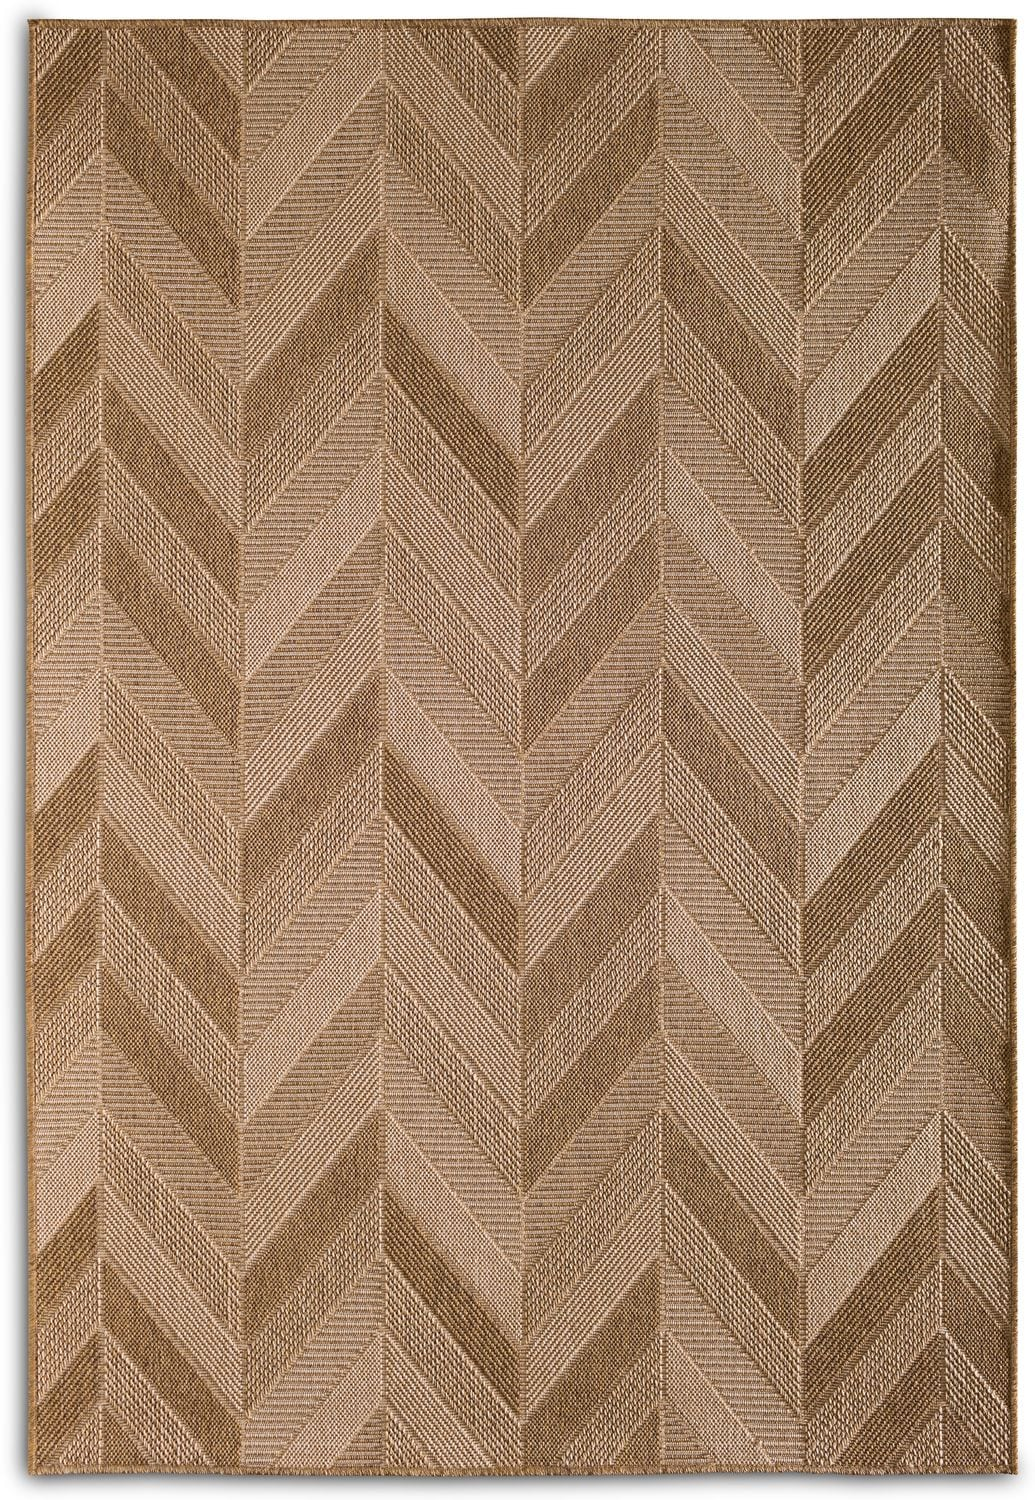 Outdoor Furniture - Chevron Indoor/Outdoor Rug - Natural